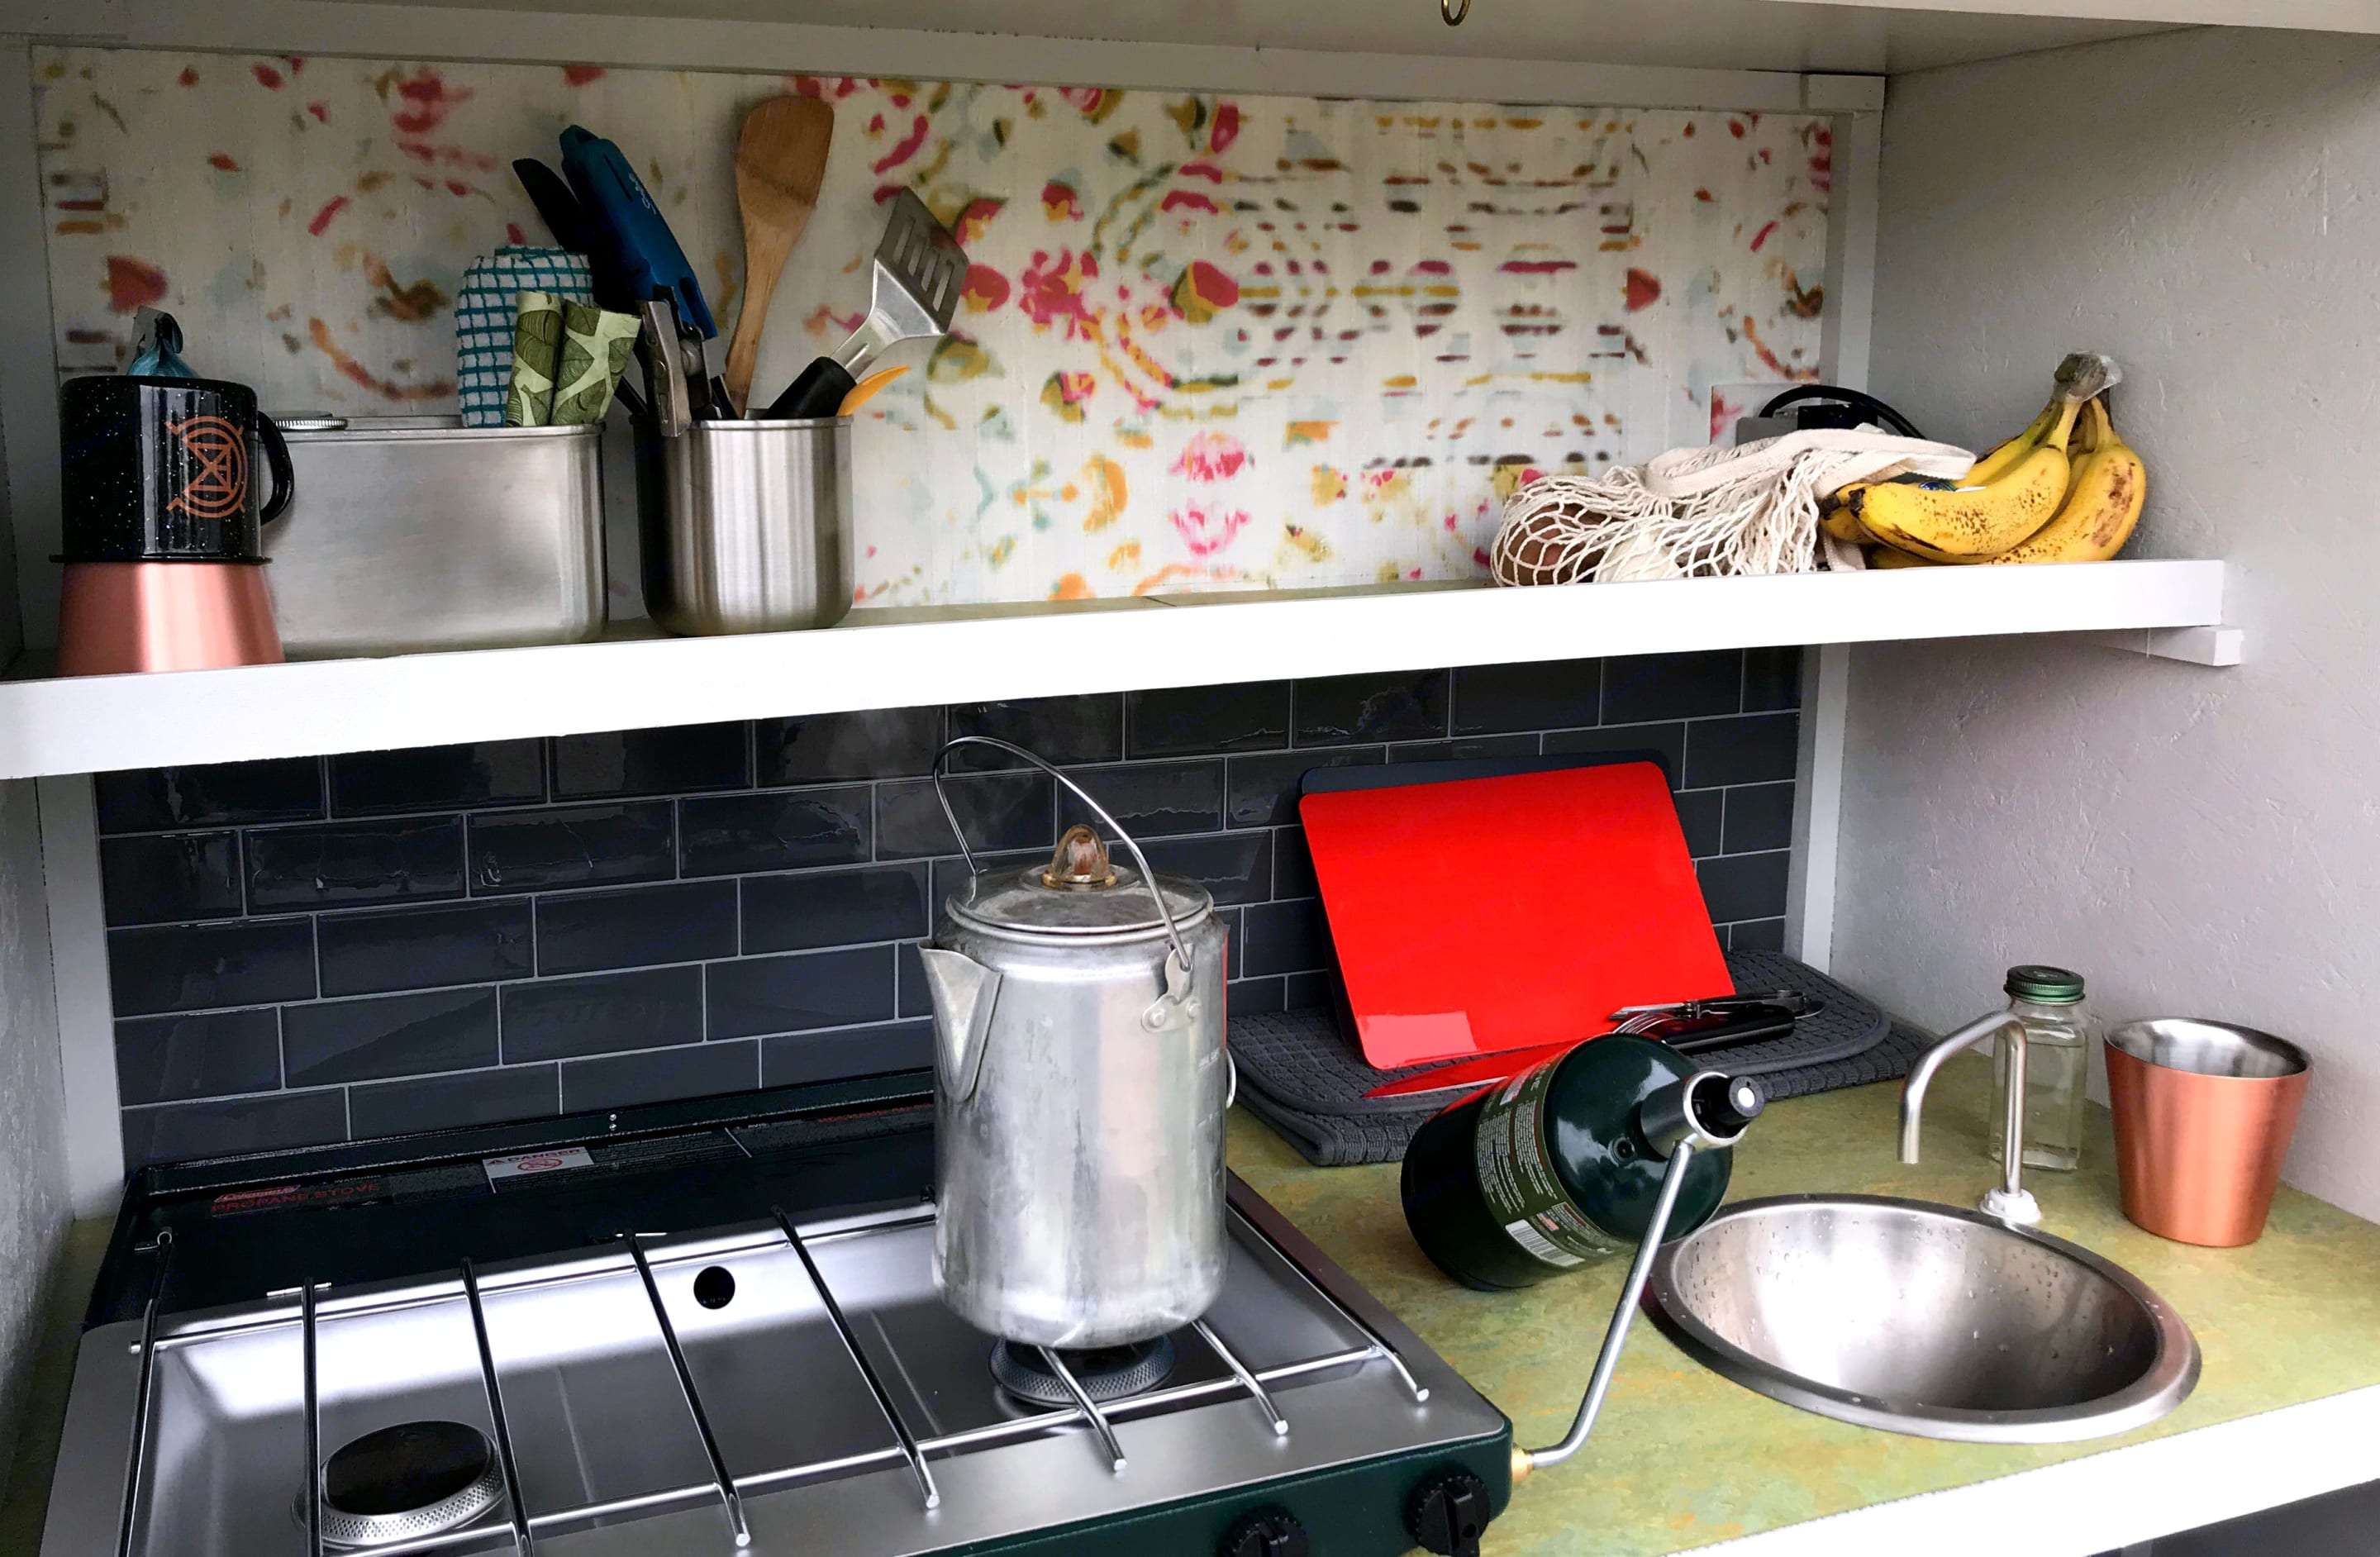 Plenty of room for meal prep, storage and clean-up with the foot-pump sink!. Other Other 2019